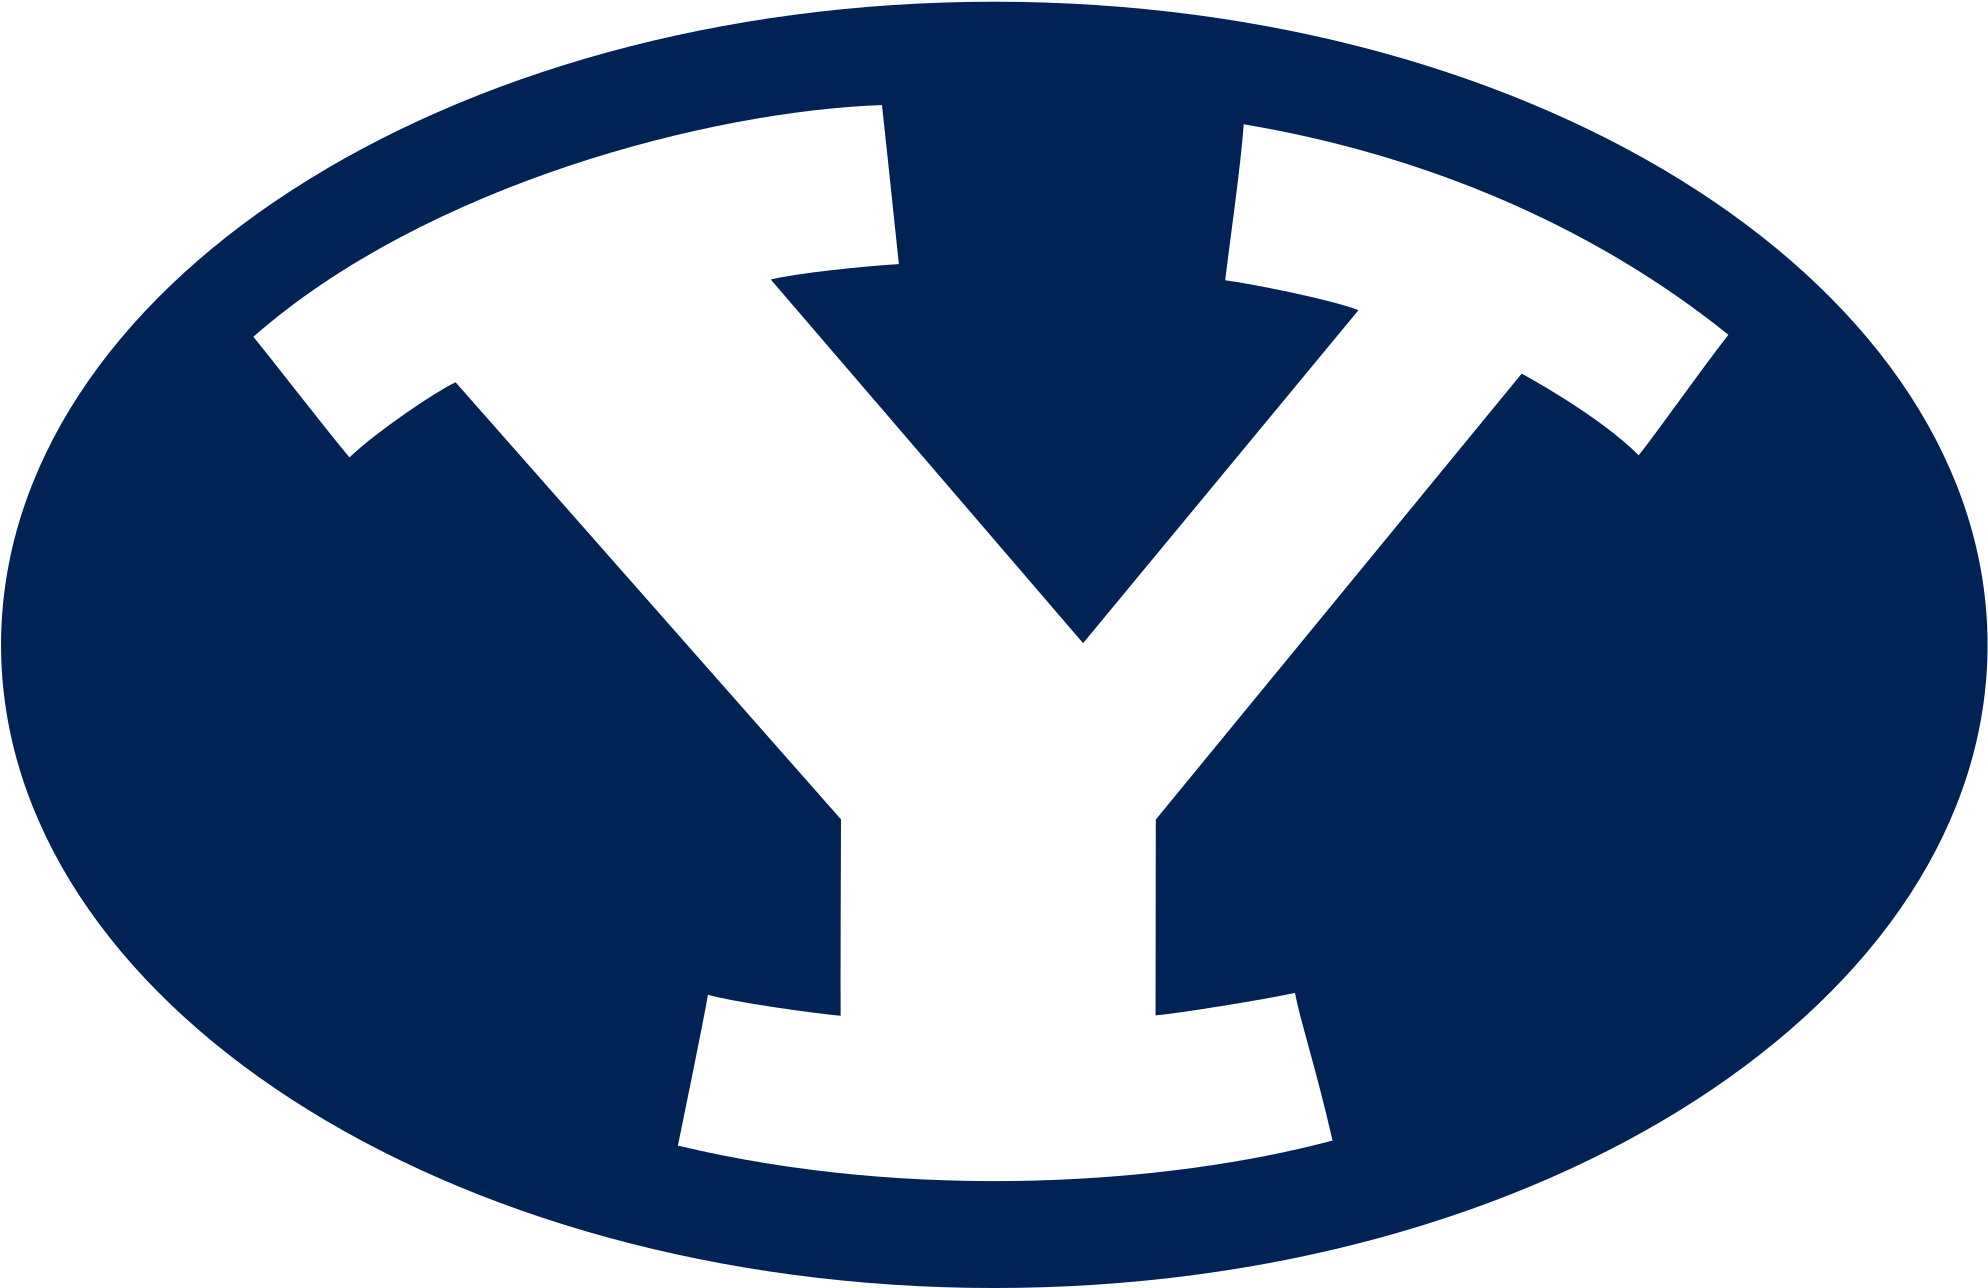 banner download Strength clipart rivalry. Byu football transparent